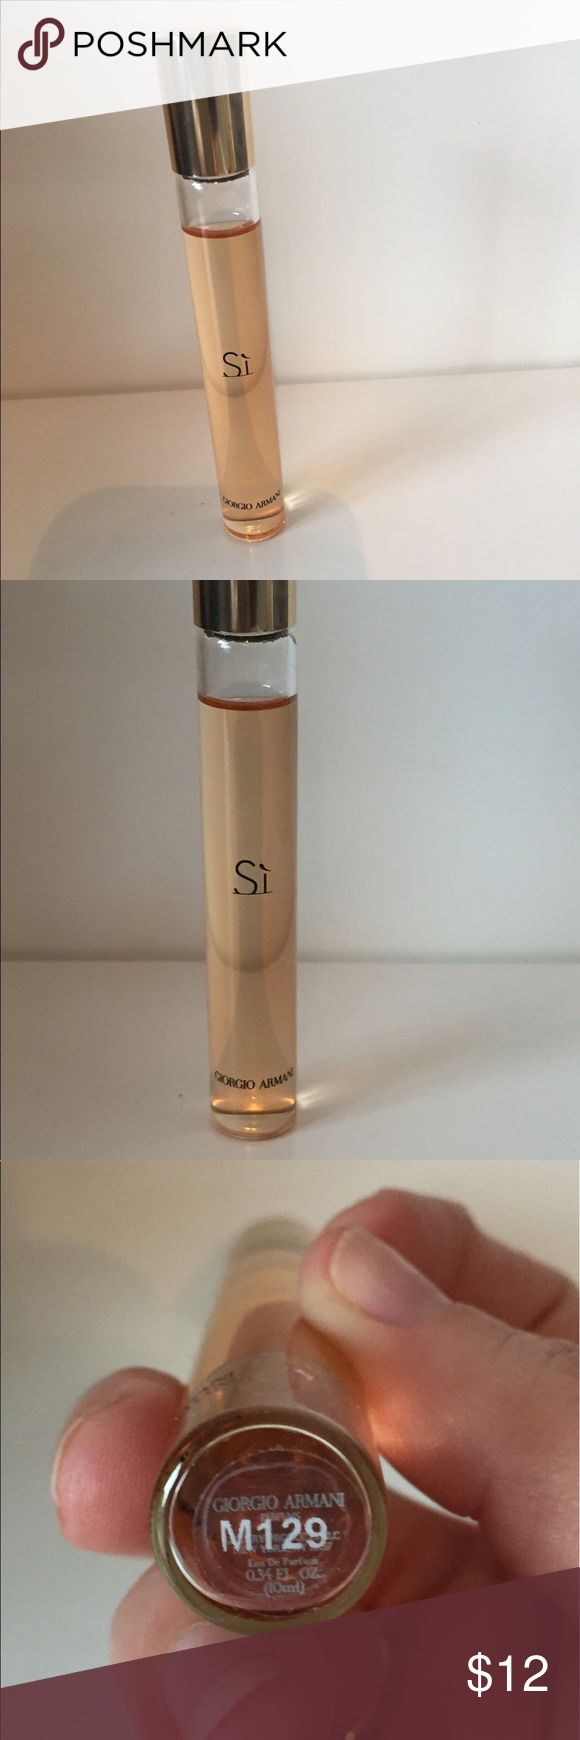 Si by Gorgio Armani rollerball Si perfume rollerball. Gorgio Armani fragrance. Used a handful of times. Smells nice but bothers my sensitive allergies. gorgio armani Makeup